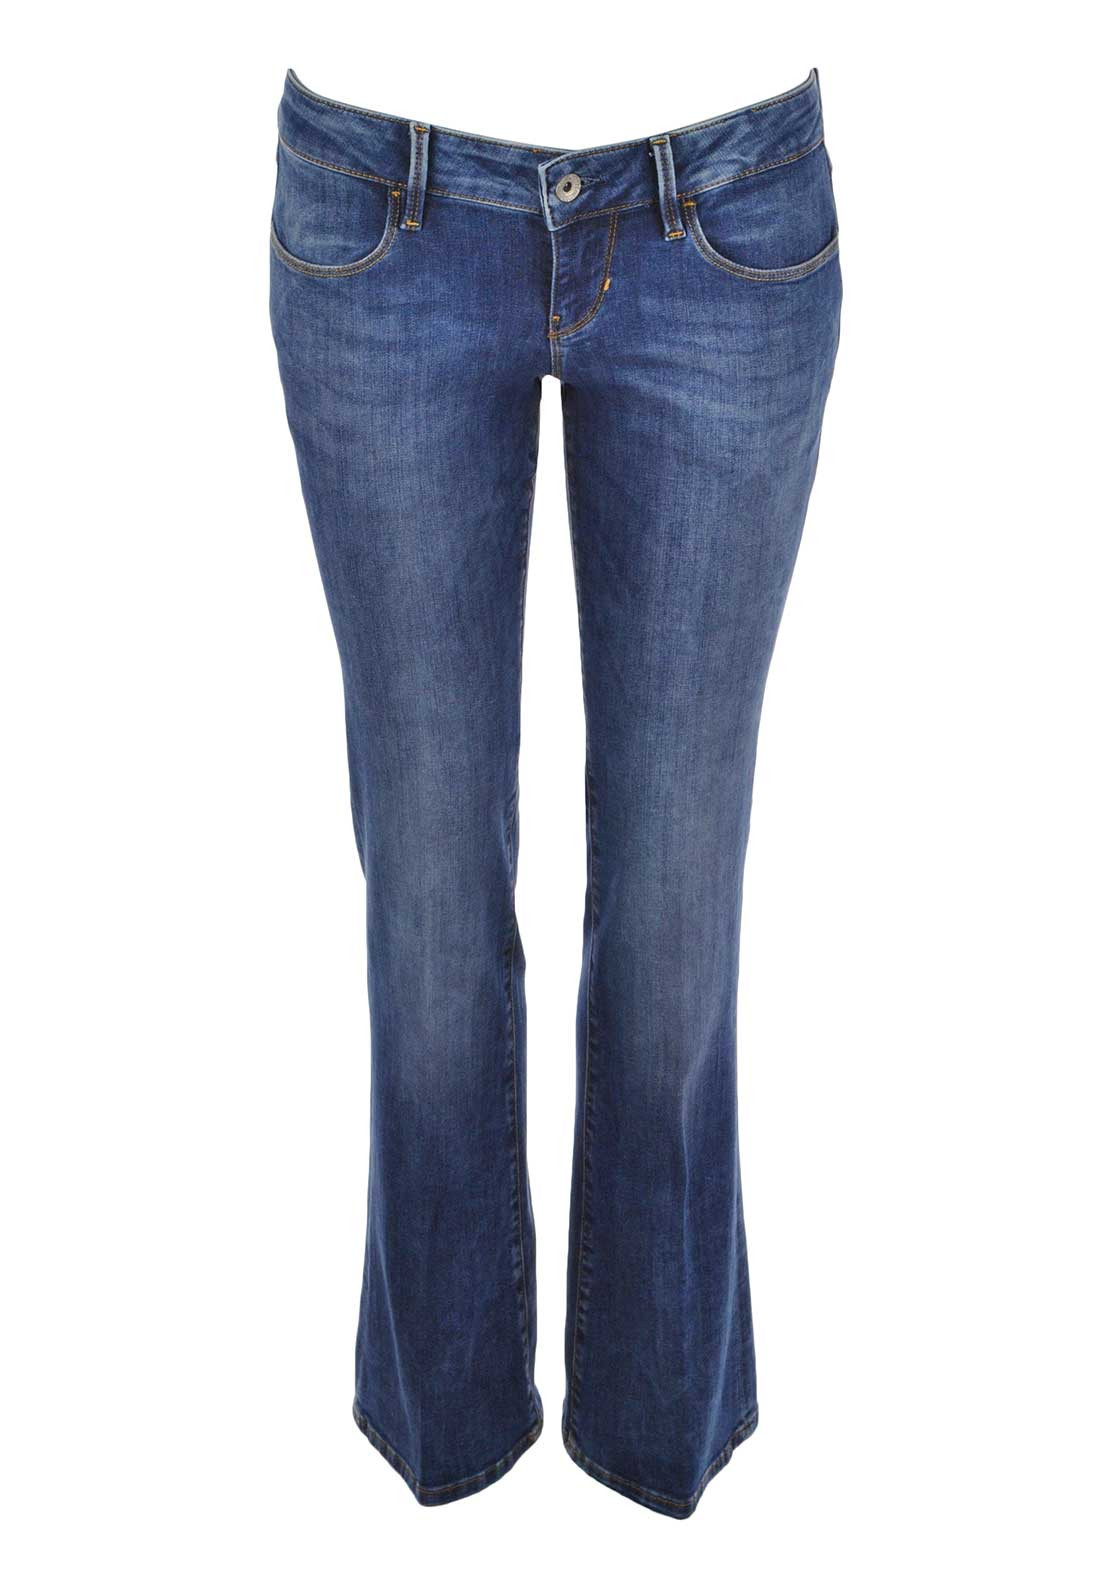 Guess Womens Worn Look Flared Jeans, Blue Denim